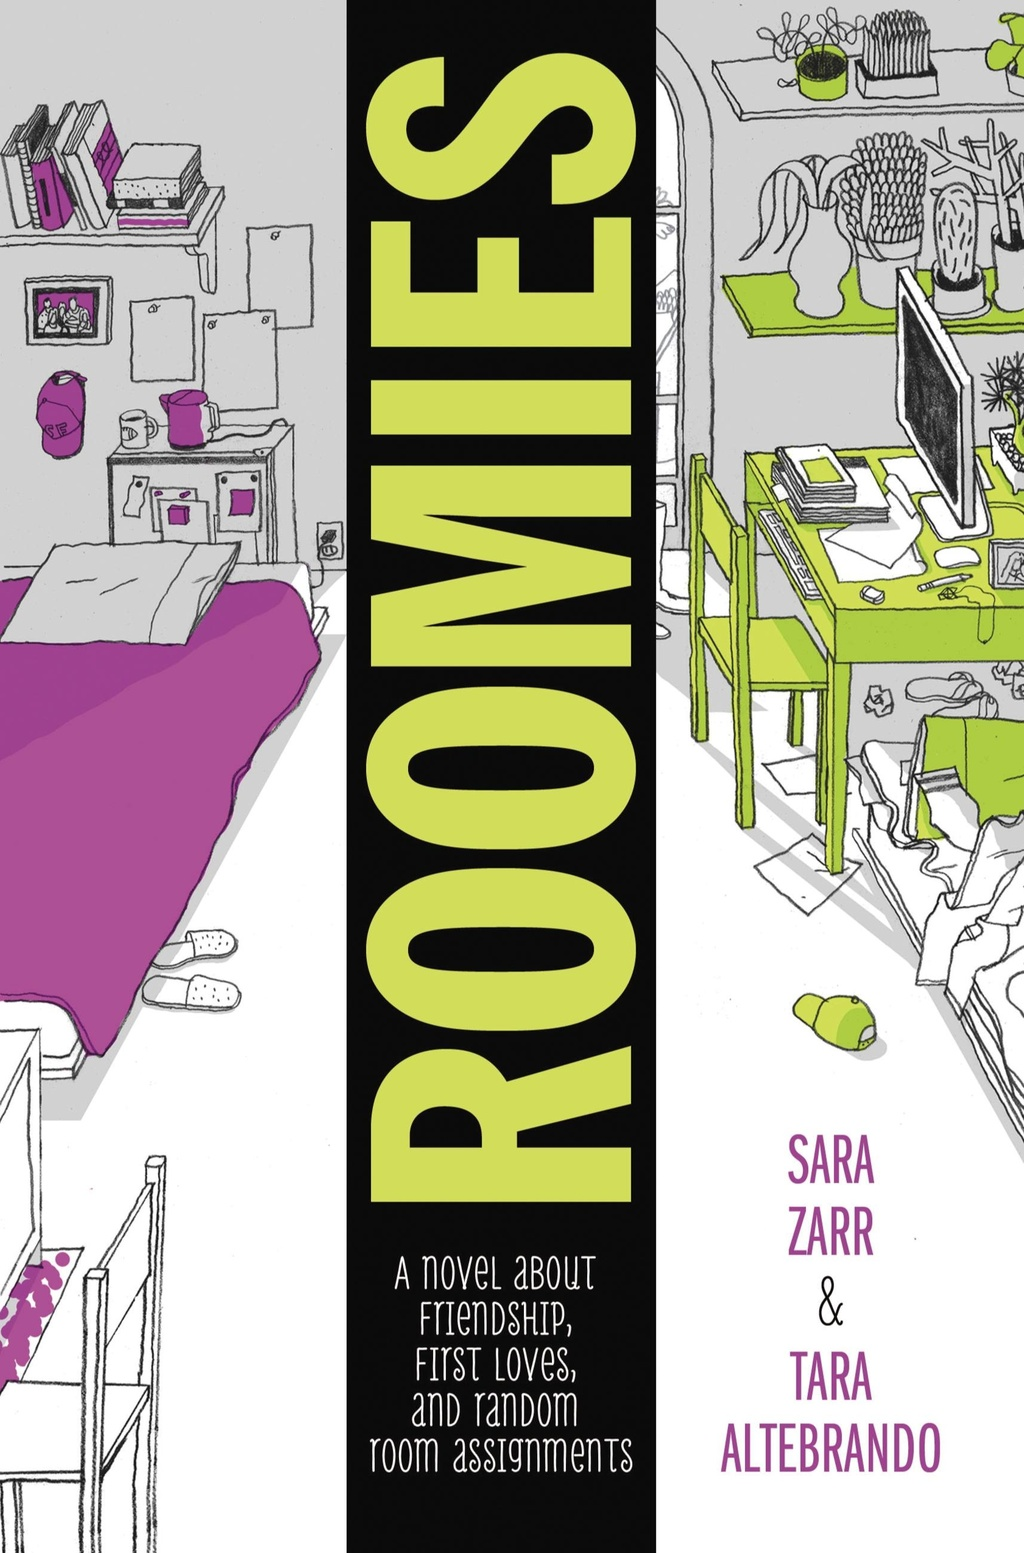 Roomies by Sara Zarr and Tara Altebrando